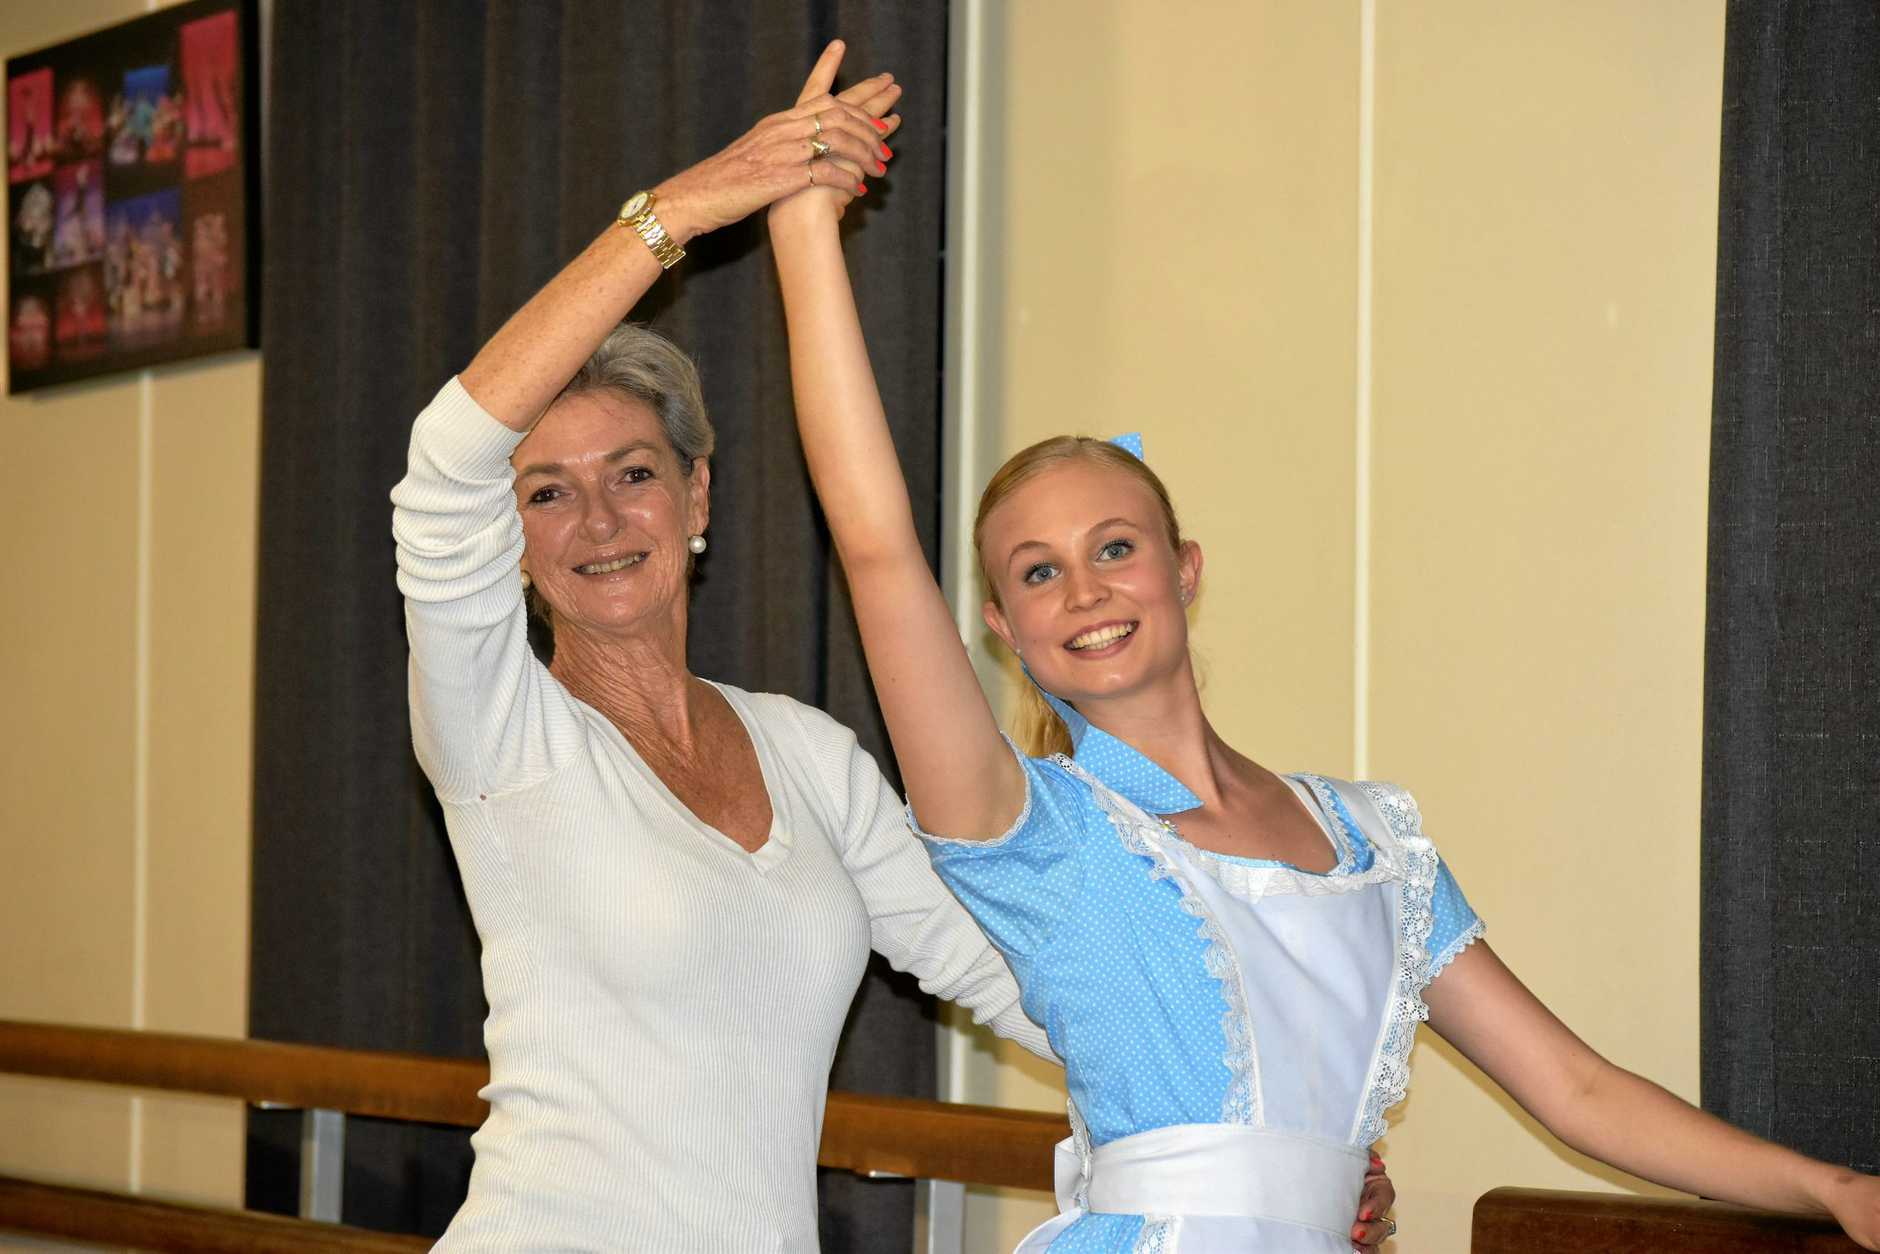 SHOW TIME: Lilly Strack aka Alice and dance teacher Cleone McRoberts at rehearsals for the Cleone McRoberts Academy of Dance annual production at the Brolga Theatre.